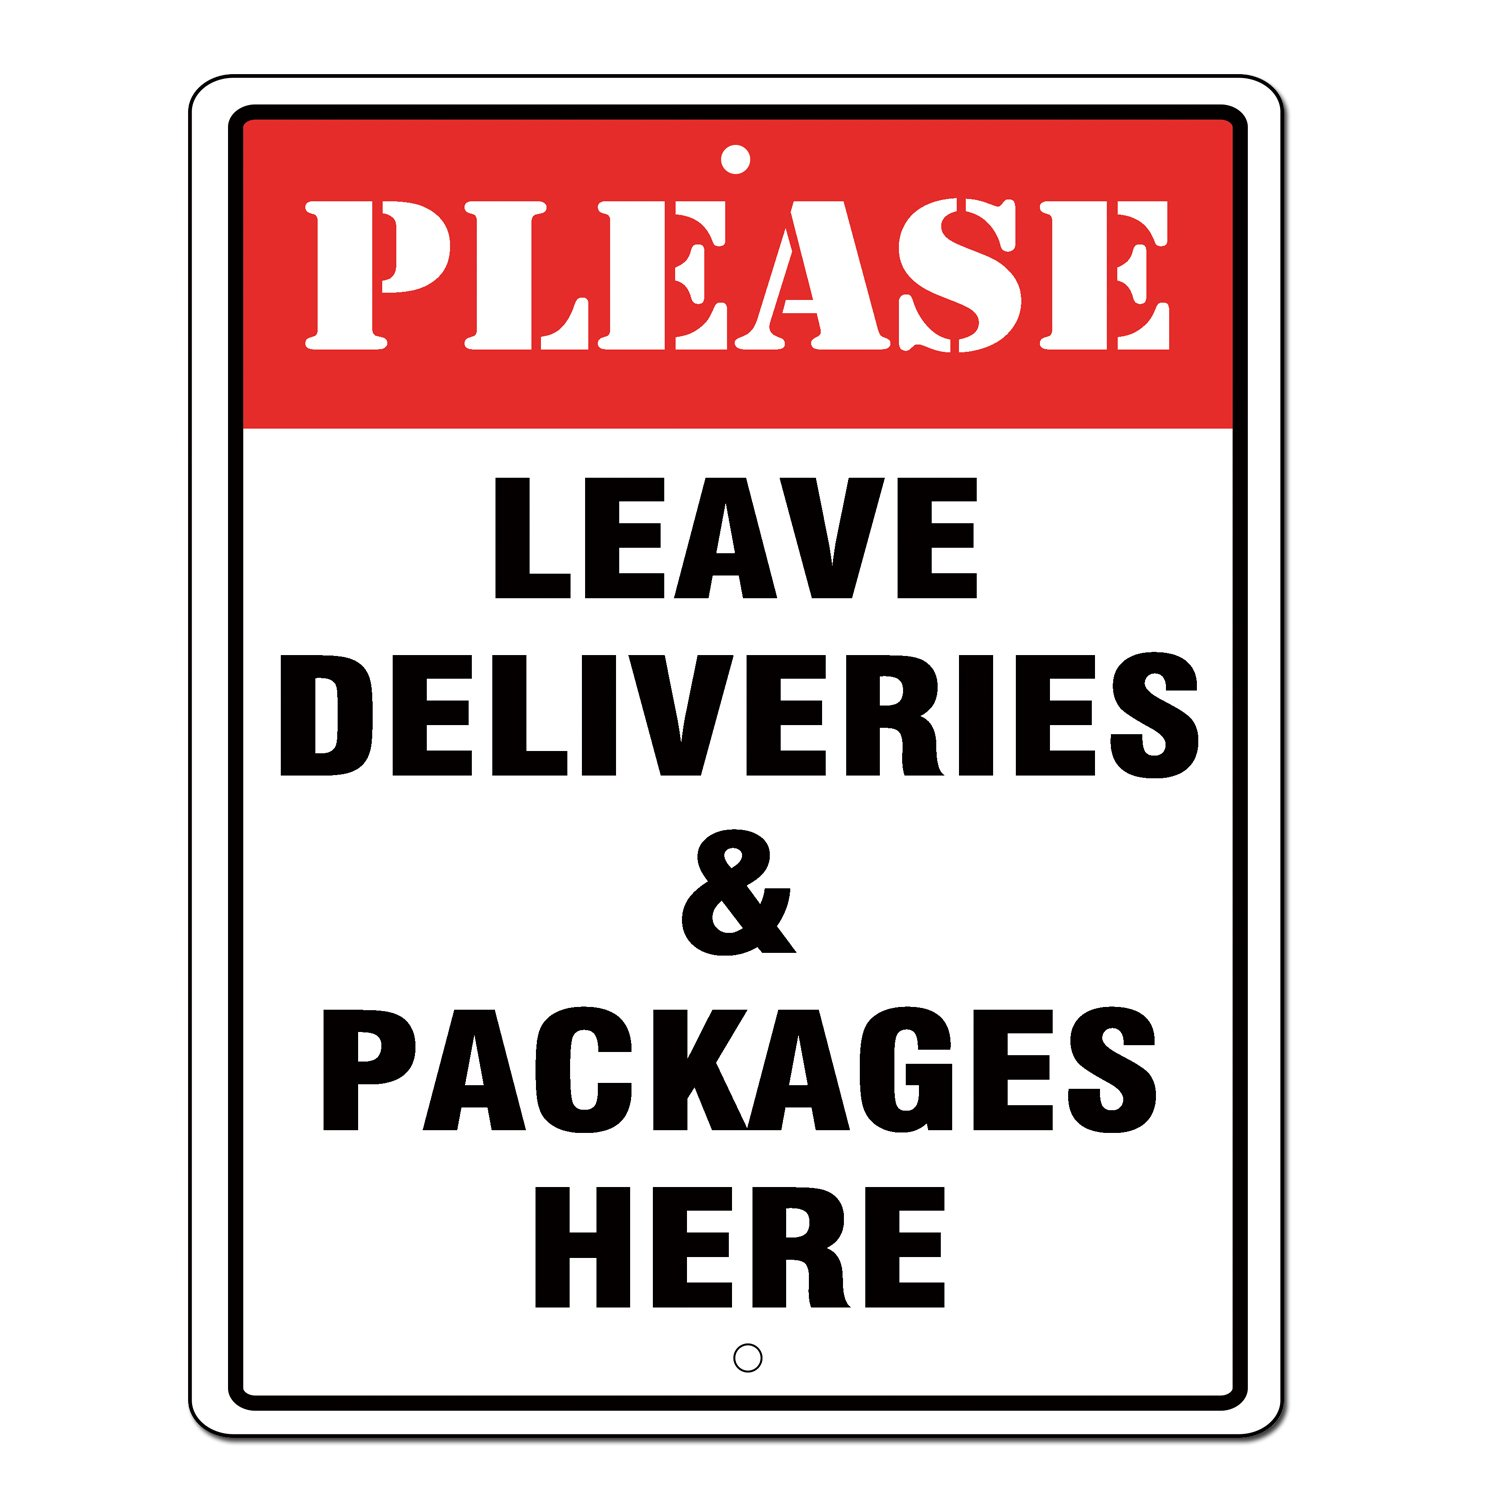 Please Leave Deliveries and Packages Here Sign 10x8 .04 Inch Aluminum Sign Rust Free Aluminum UV Printed Reflective Easy to Mount